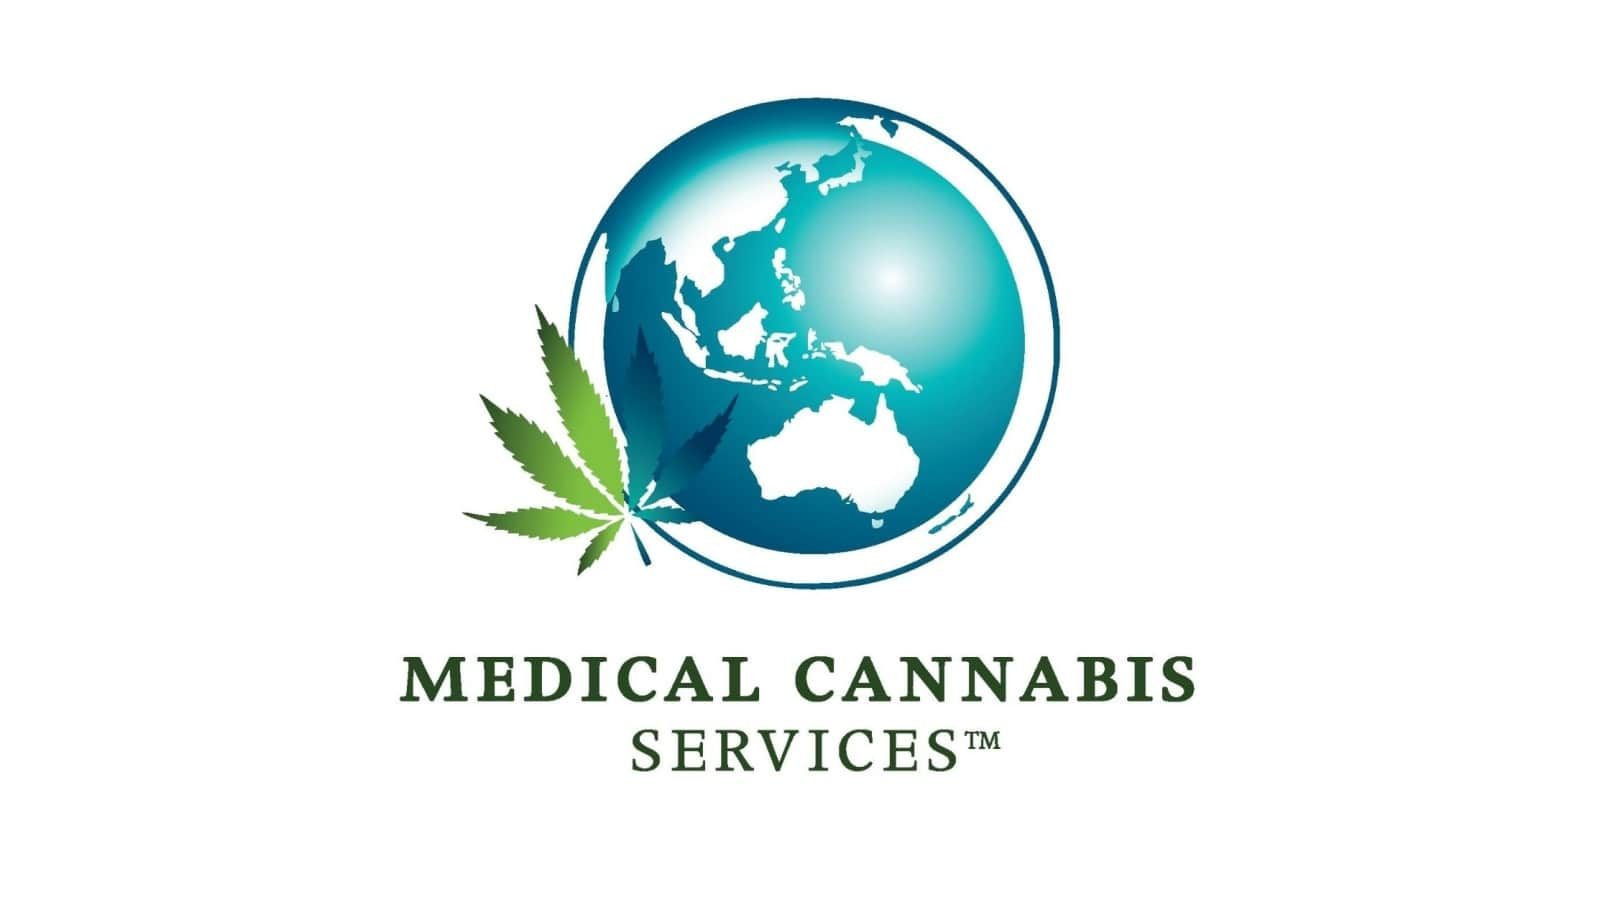 Medical Cannabis Services: Brisbane Clinic Guide